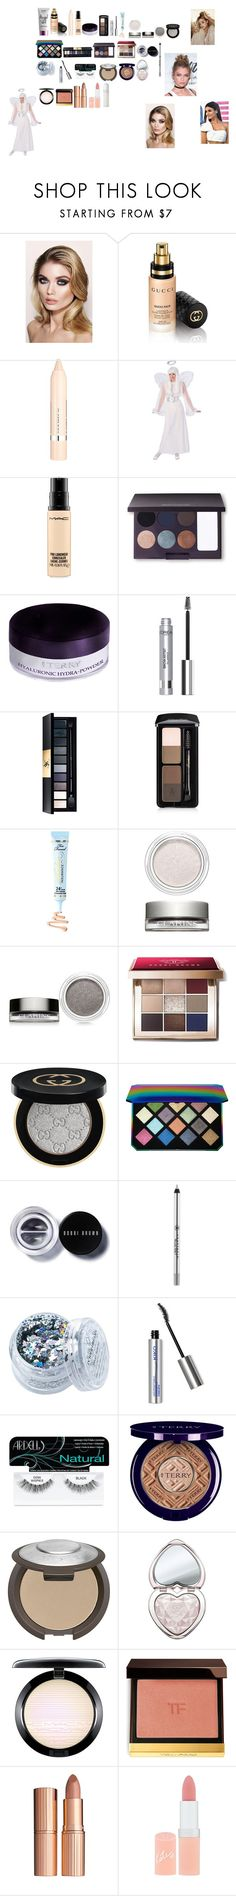 """Angel Inspired Makeup Halloween Series"" by hayleyjacksonuk ❤ liked on Polyvore featuring beauty, NYX, Charlotte Tilbury, Gucci, L'Oréal Paris, MAC Cosmetics, Laura Mercier, By Terry, John Lewis and Guerlain"